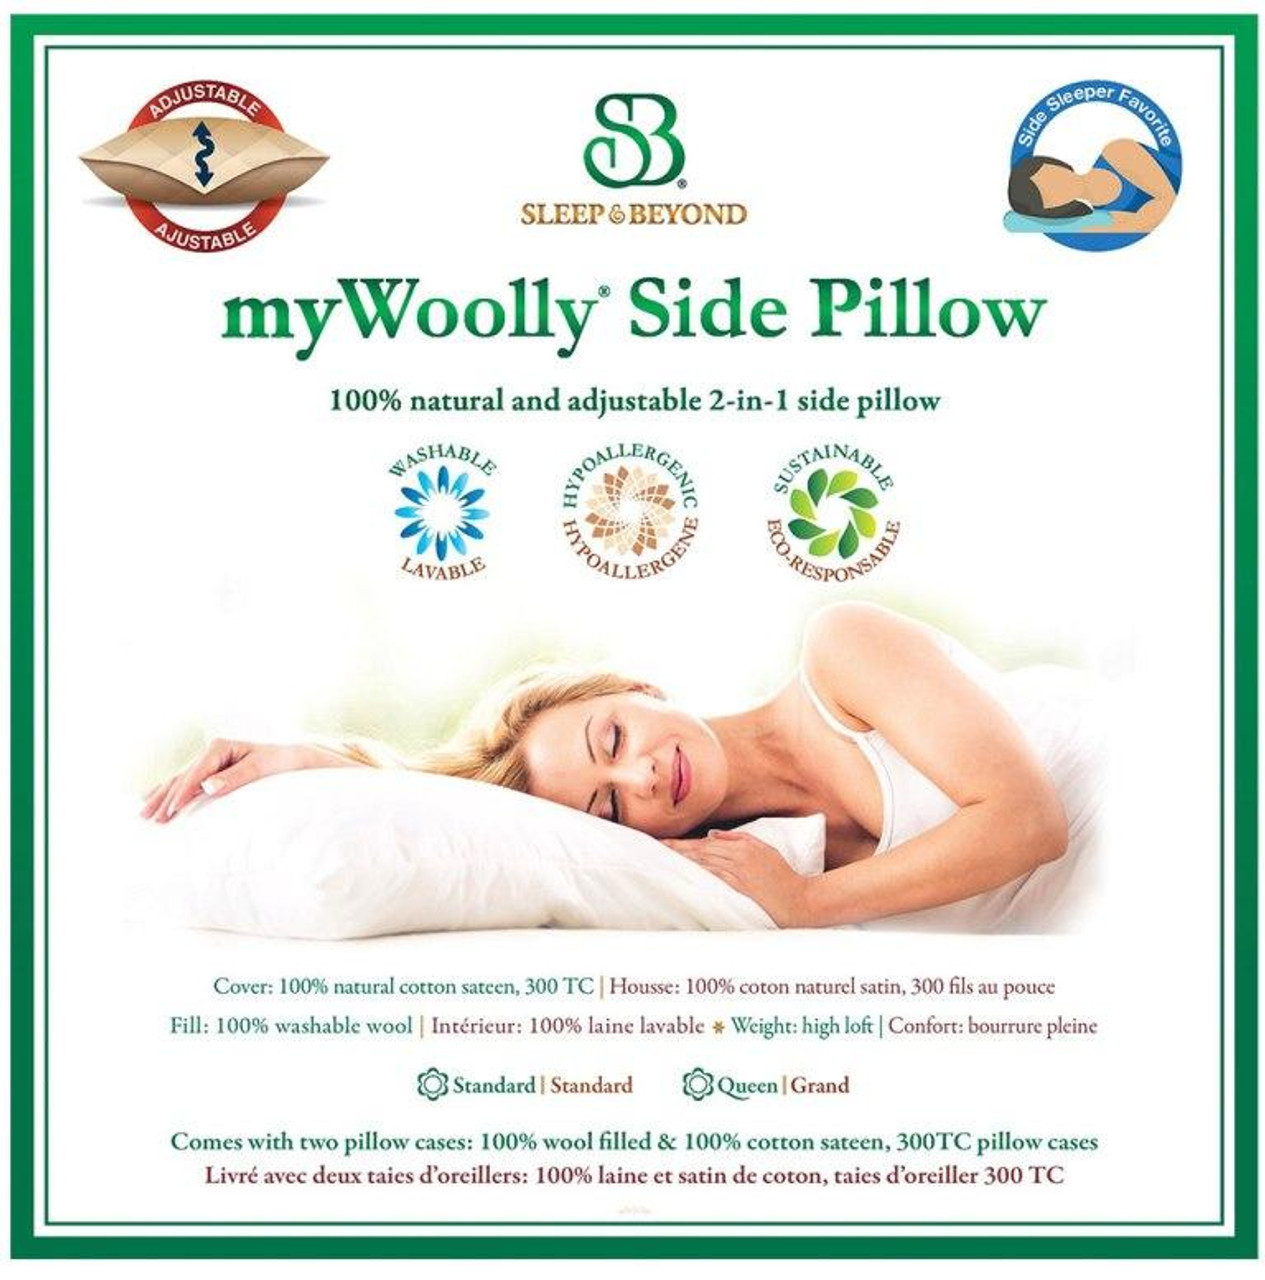 Sleep & Beyond myWoolly Side Pillow, 100% natural, adjustable and washable side wool pillow packaging